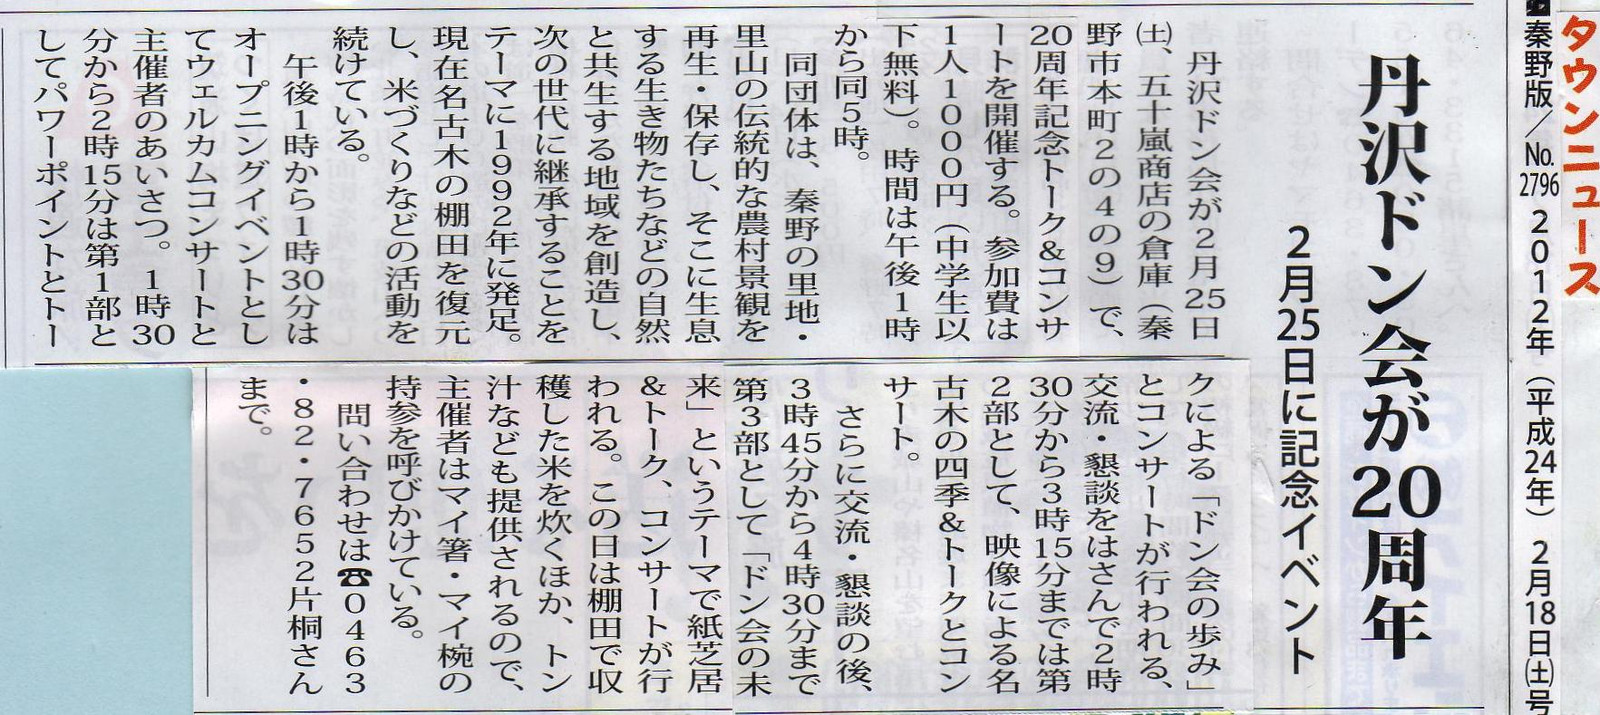 Scan11143